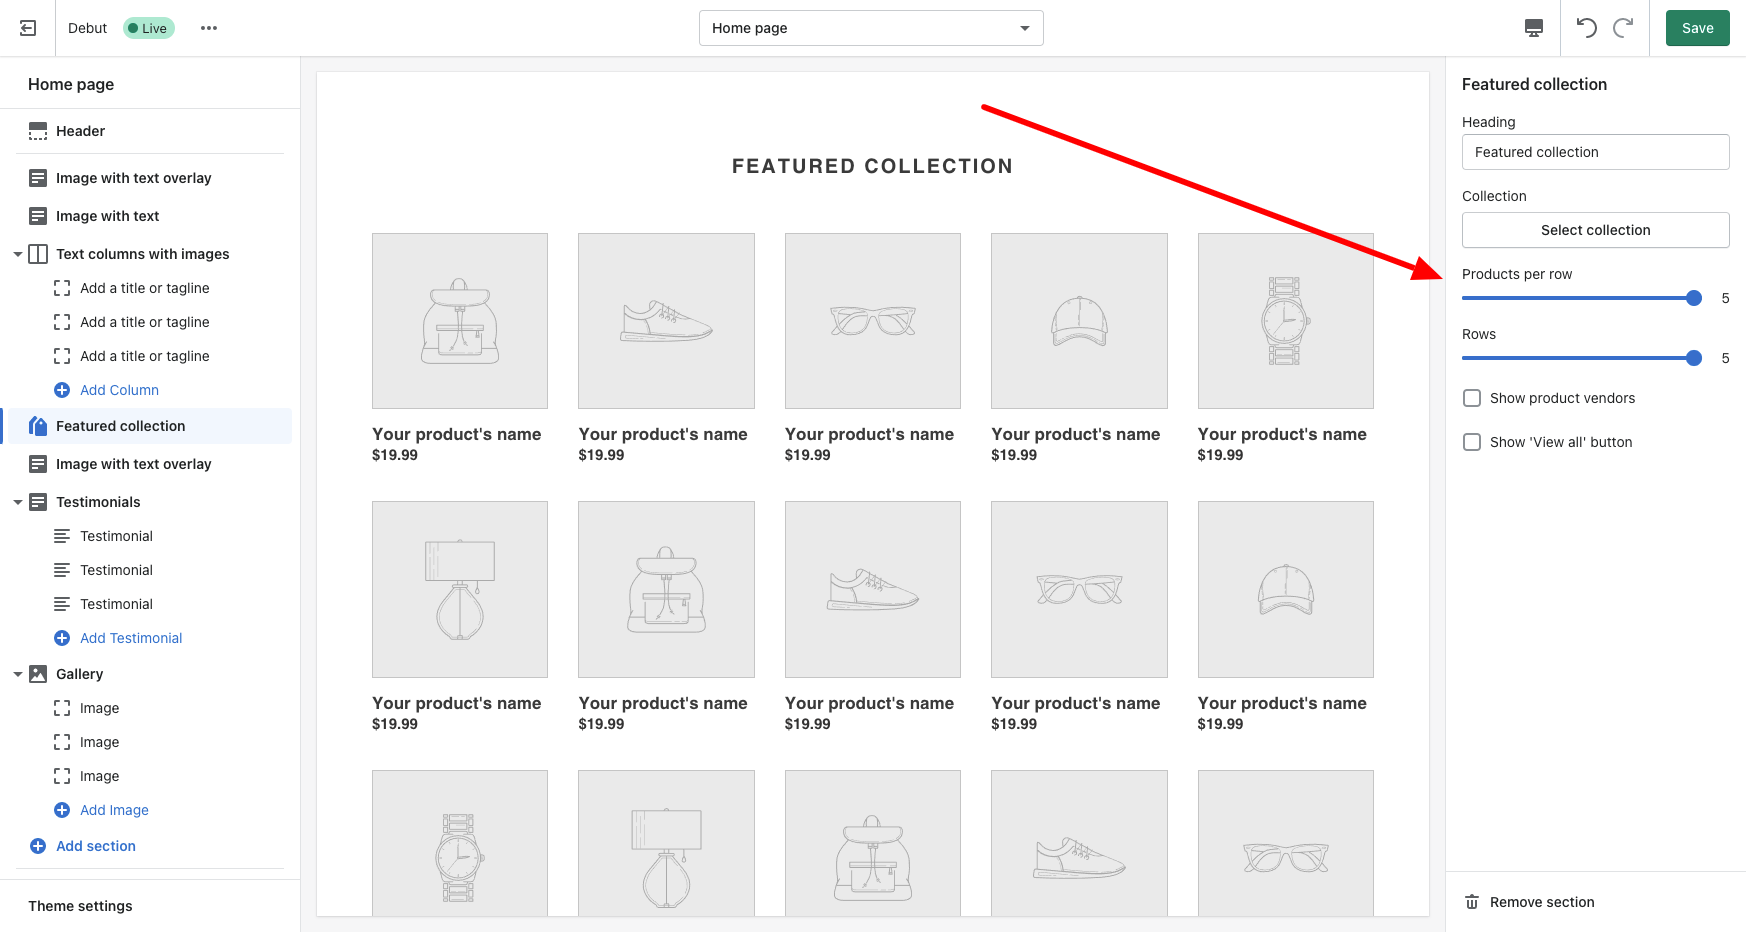 shopify dashboard debut theme grid options featured collection